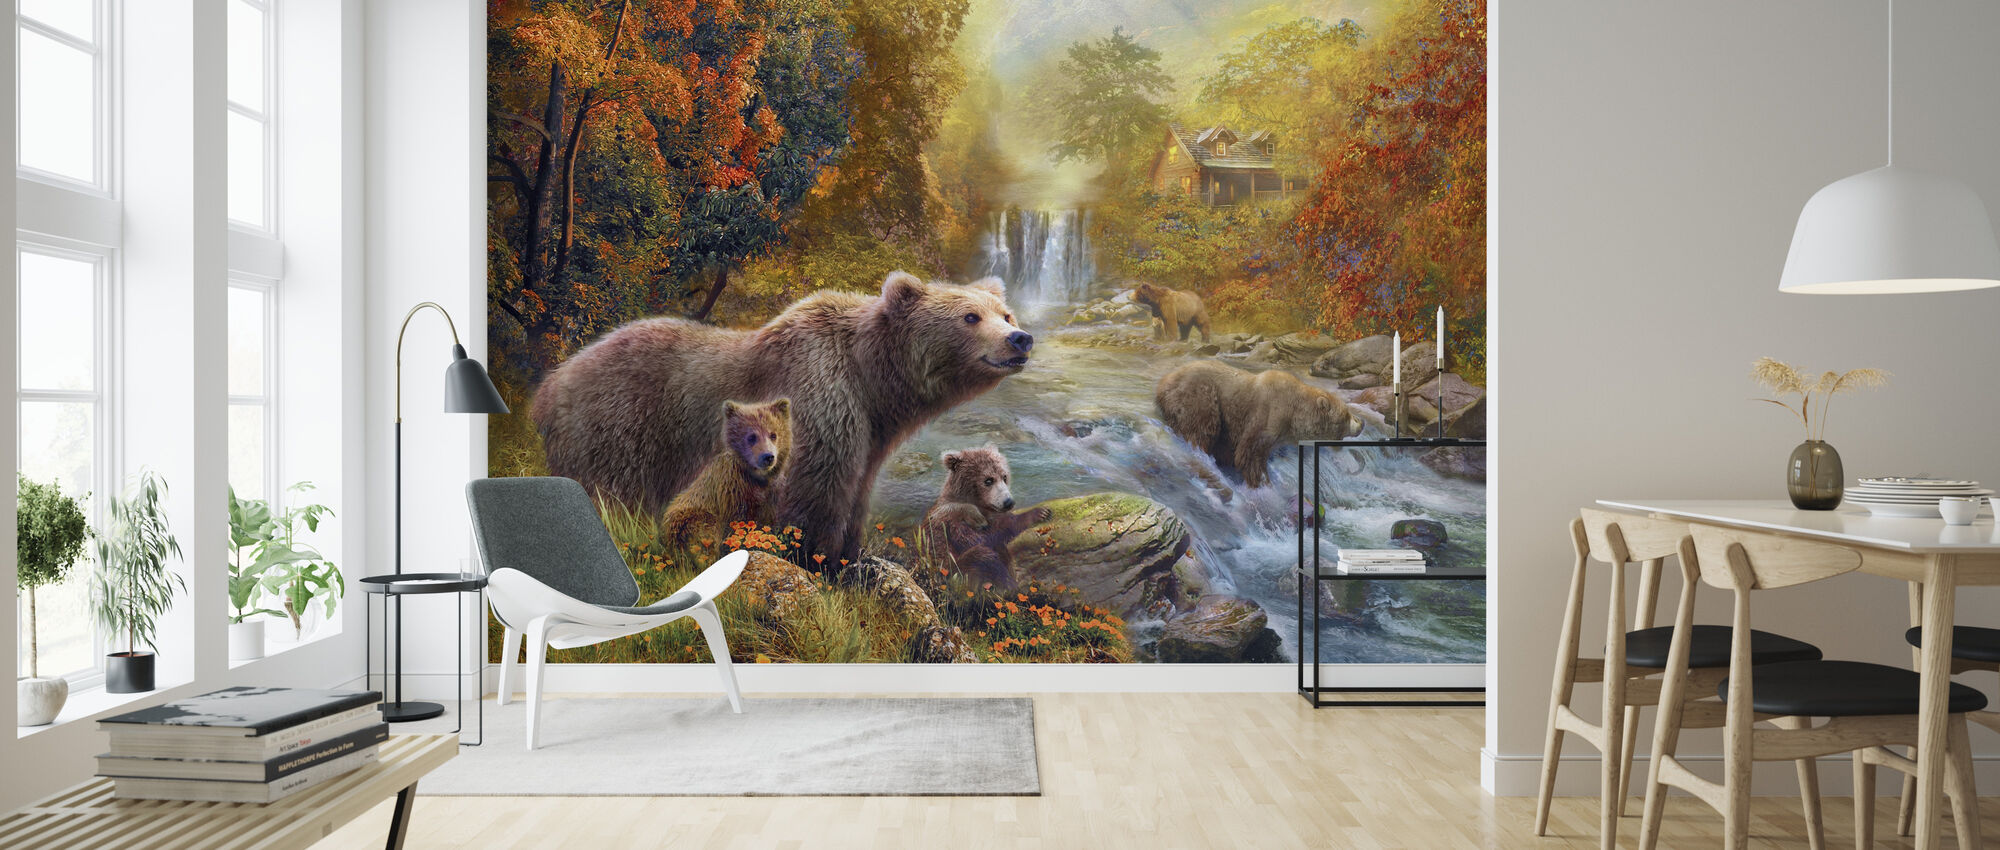 Bears by the Stream - Wallpaper - Living Room